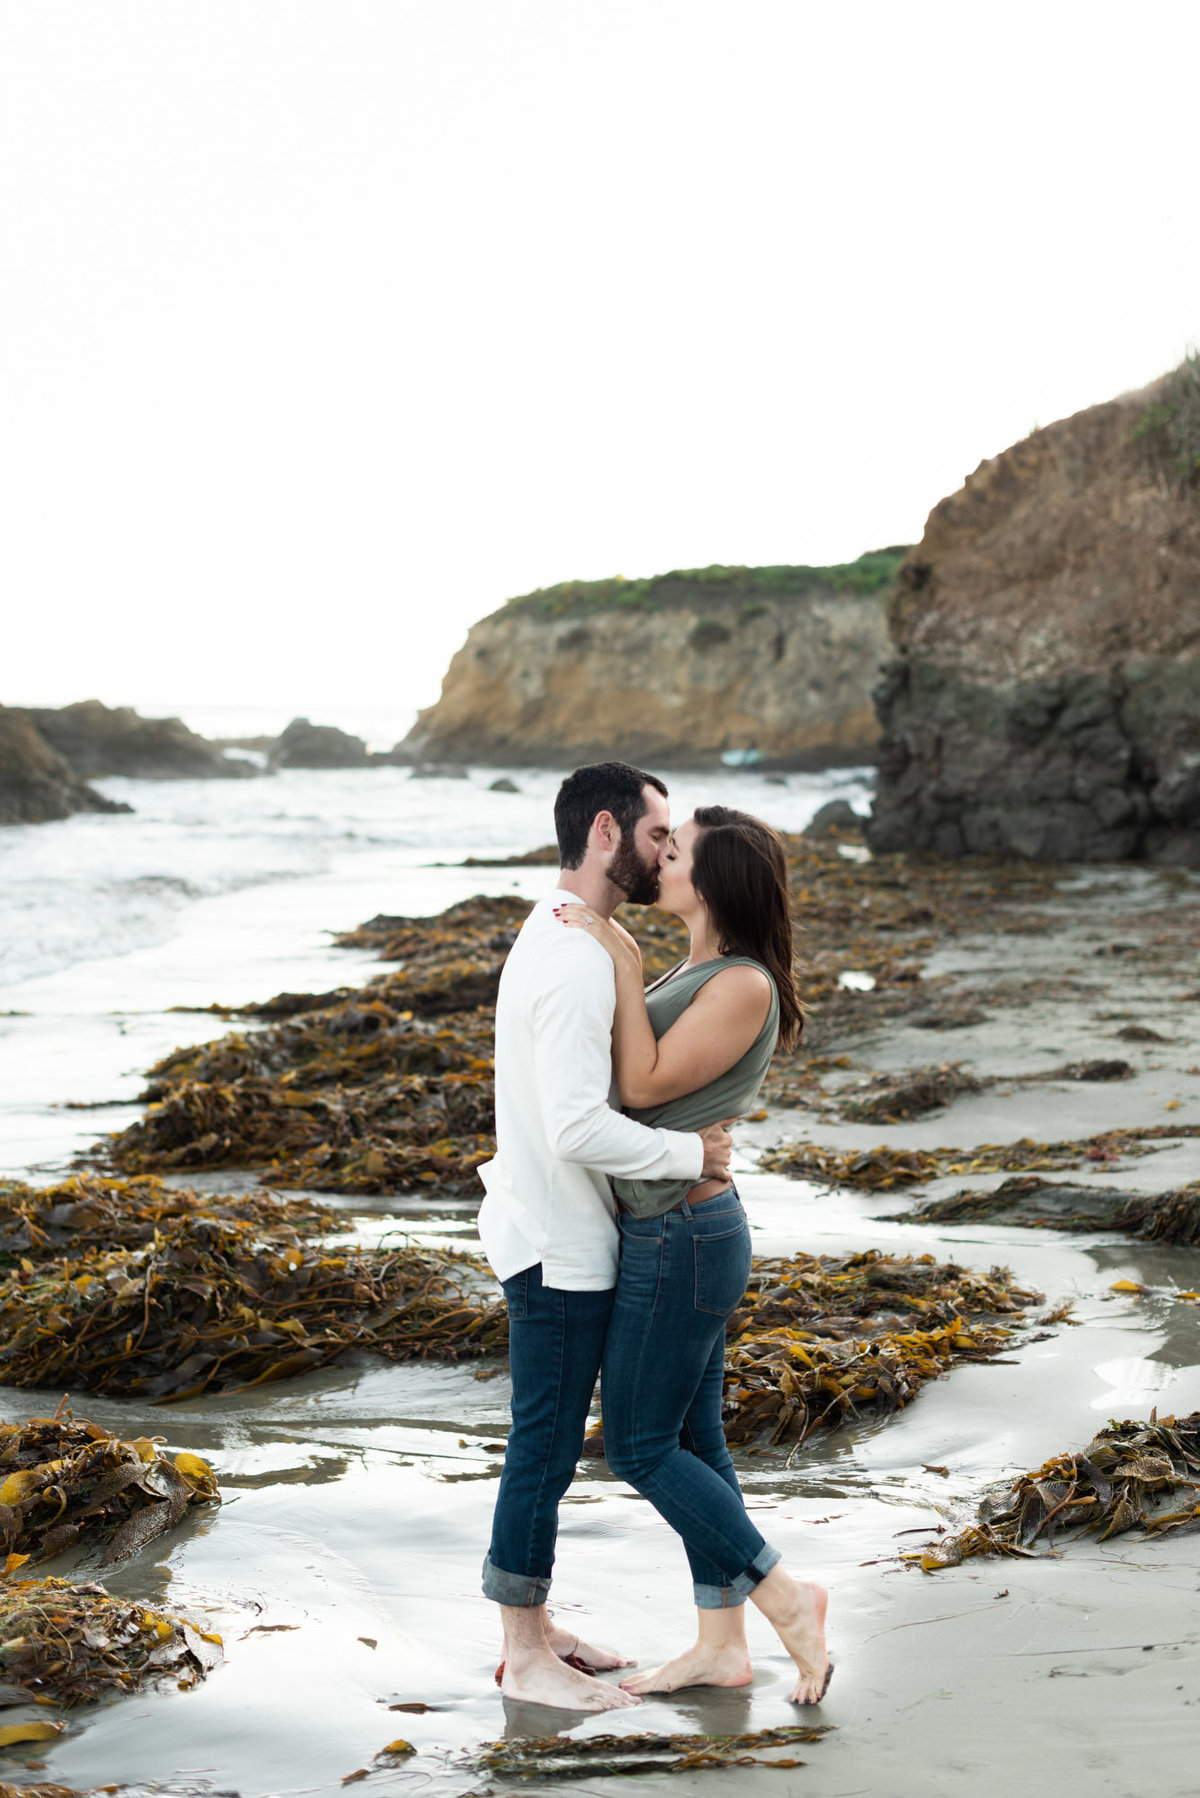 Central-Coast-Engagement-Session-by-San-Luis-Obispo-Wedding-Photographer-Kirsten-Bullard-23